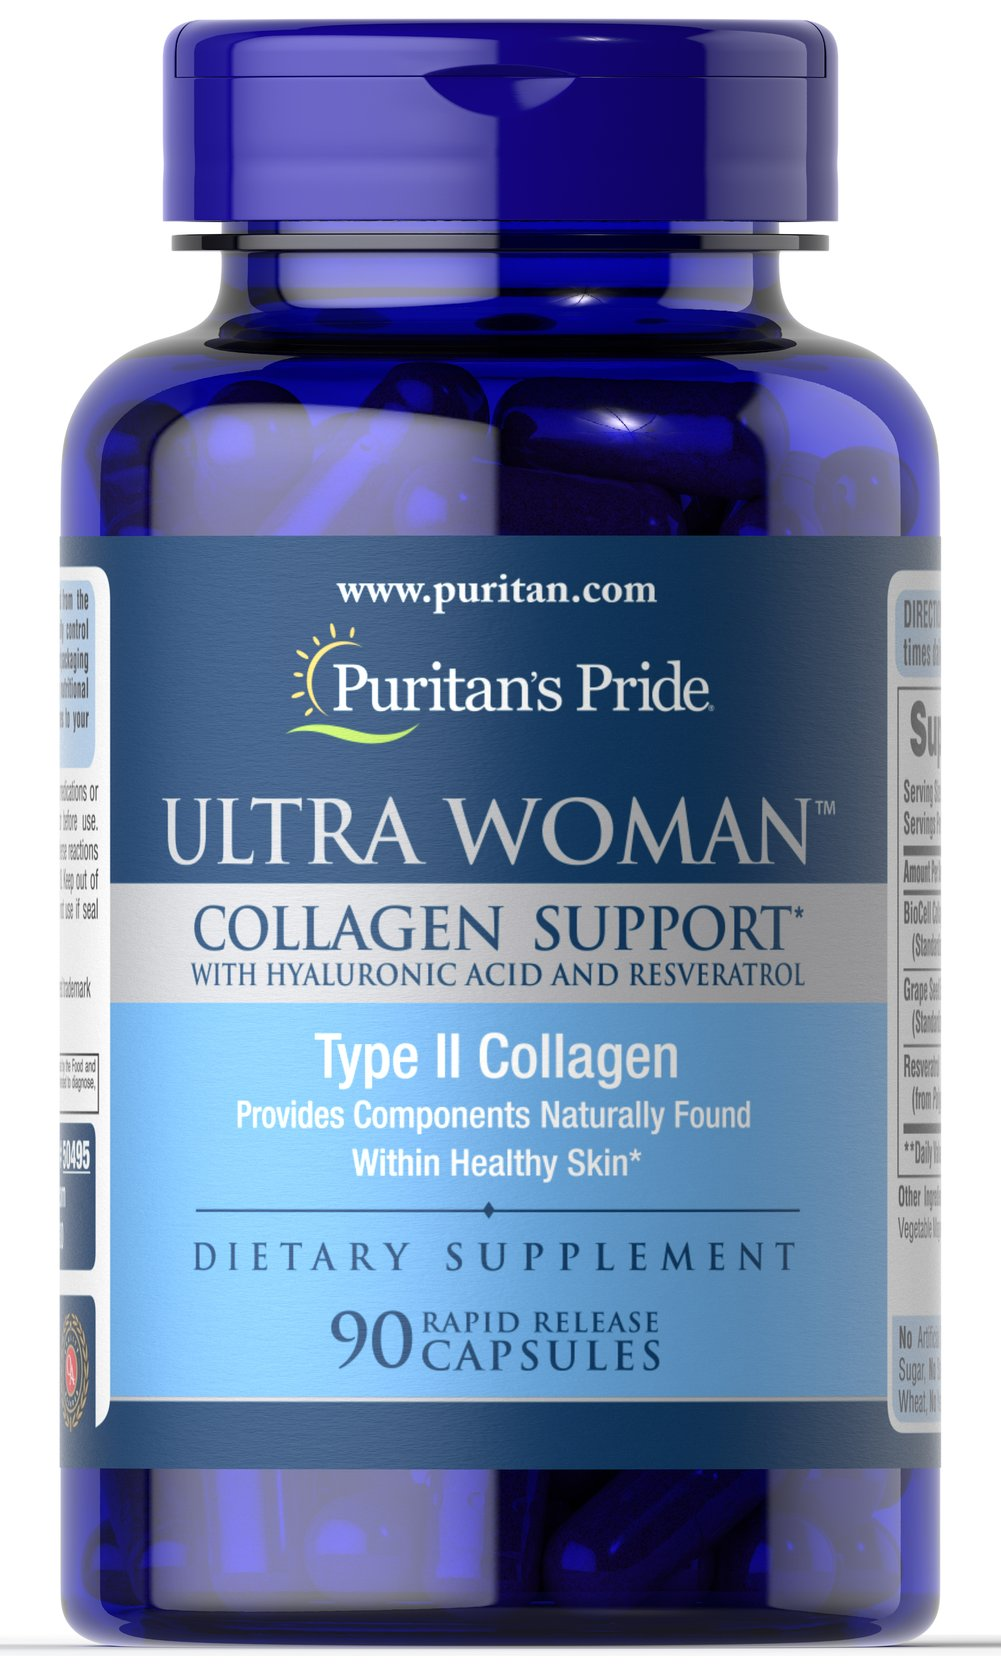 Ultra Woman™ Collagen Support <p><span></span>Standardized to contain 10% Hyaluronic Acid.</p><p><span></span>Also includes Resveratrol for antioxidant support.**</p><p><span></span>Rapid release capsules.</p><p>Ultra Woman™ Collagen Support is a dietary supplement that is made up of a complex of nutrients. Each serving includes 1,000mg of BioCell Collagen II® which is standardized to contain 10% Hyaluronic Acid,